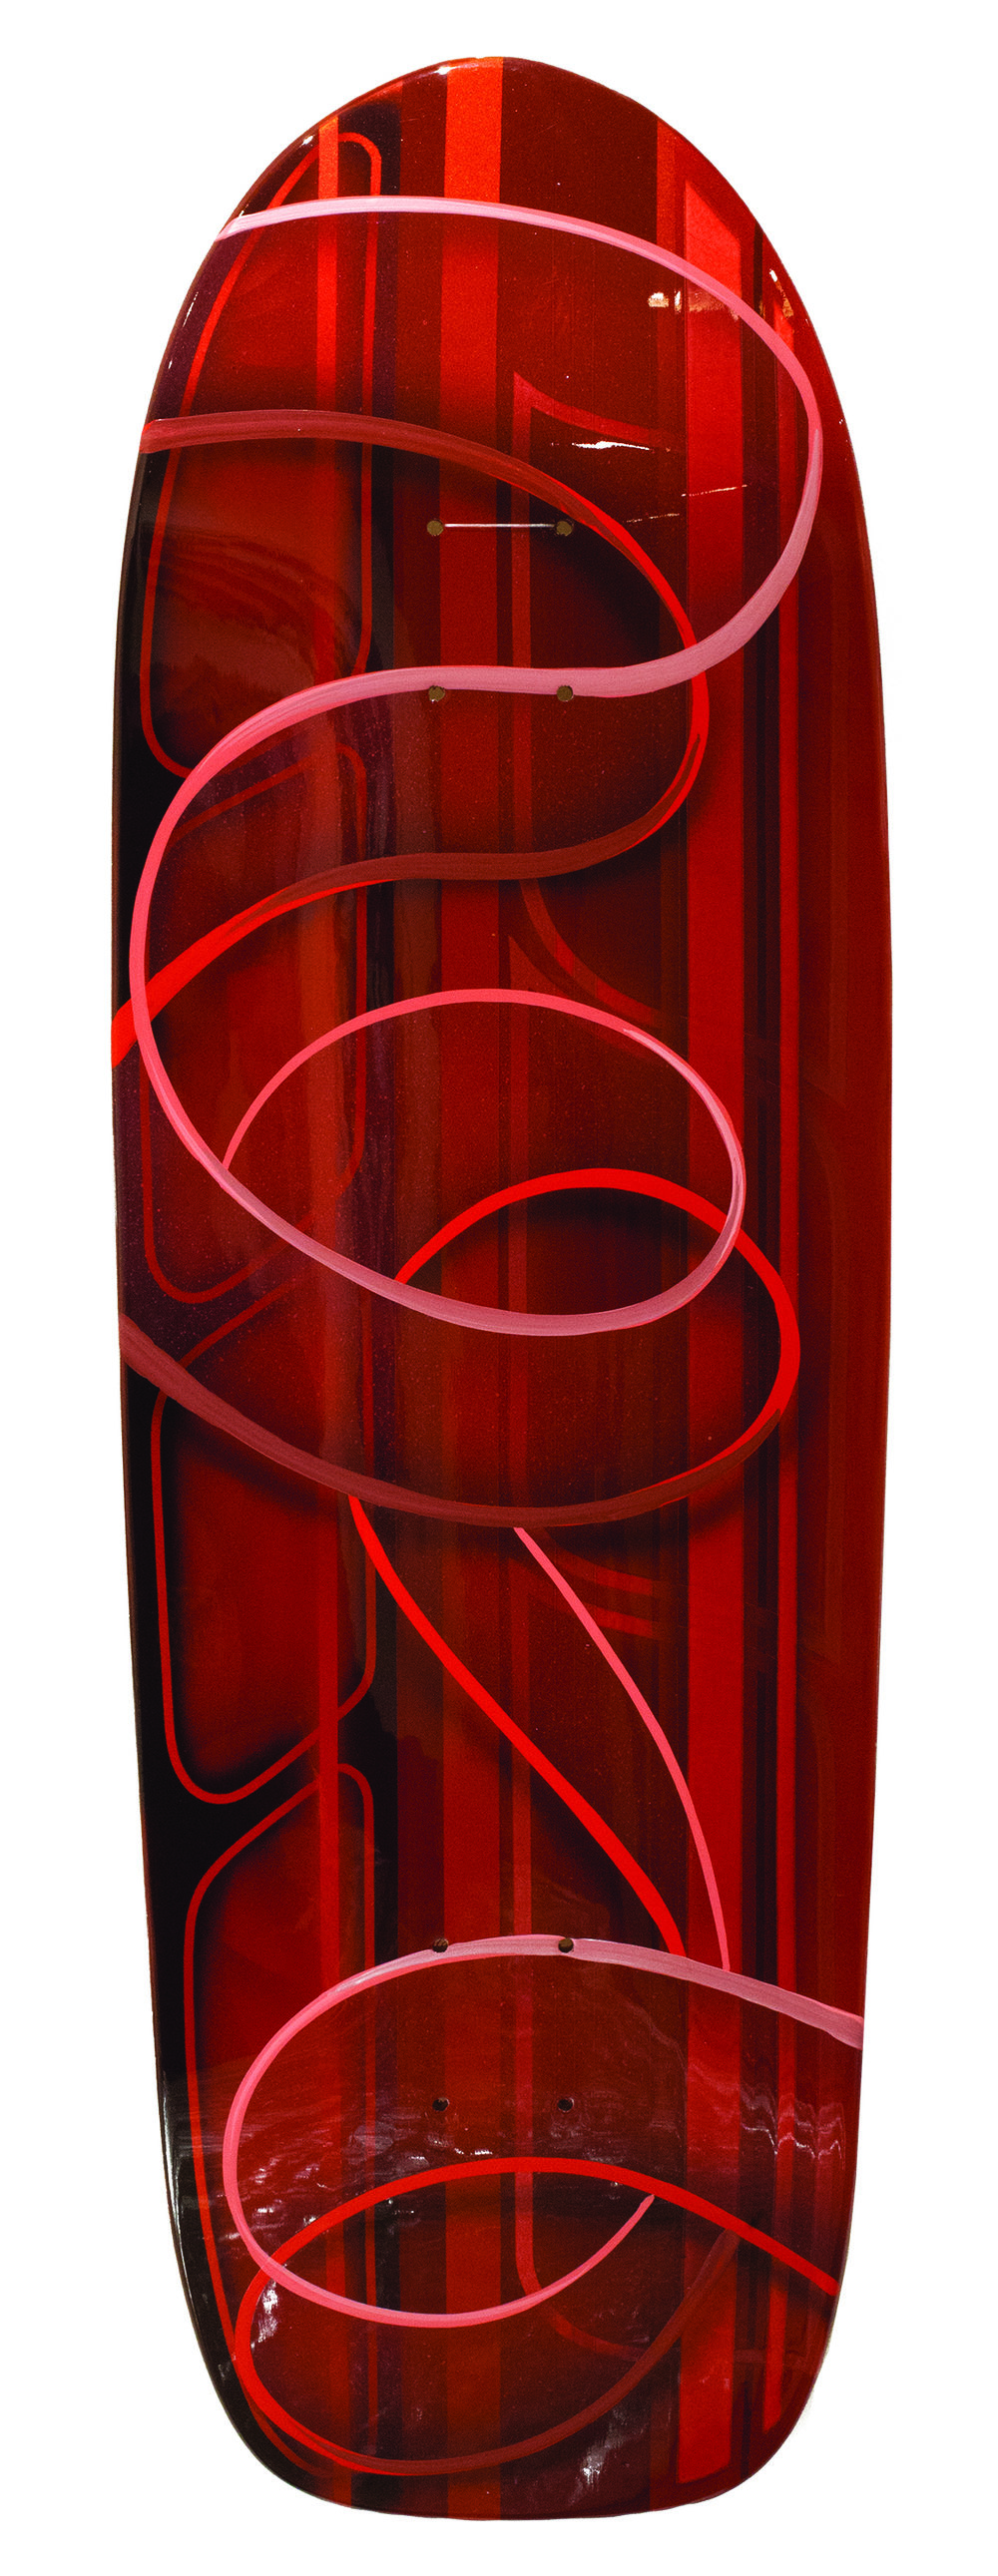 PHIL LEONARD // UNTITLED // 2018 // ENAMEL AIRBRUSH ON SKATE DECK // 36 X 8 INCHES